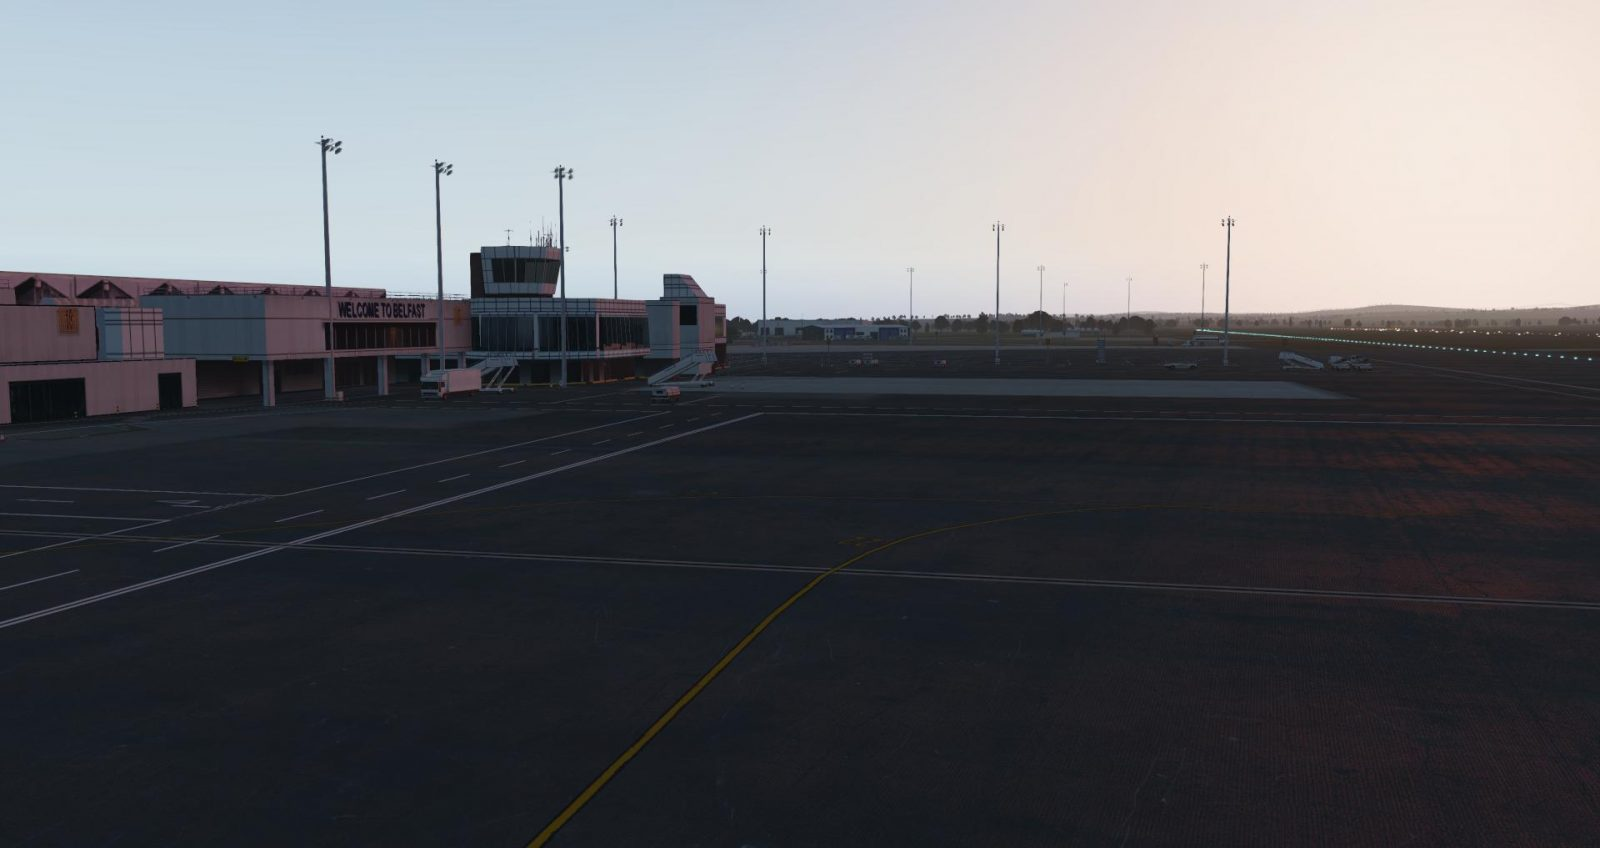 uk2000scenery-belfast-xplane-11-1-1600x8